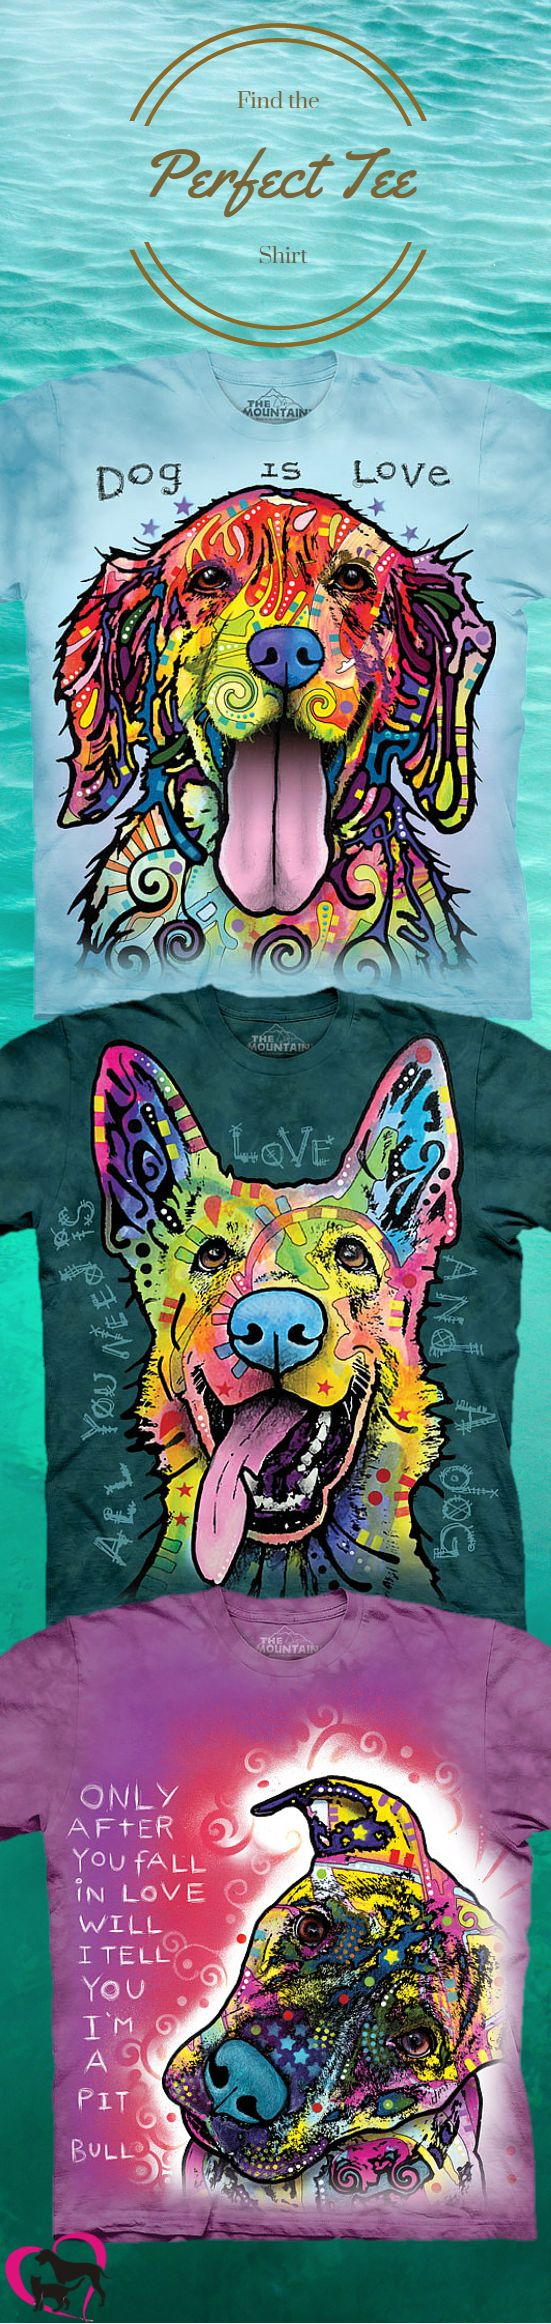 We have thousands of tee shirts in every style, color, or design you can imagine.  Tee shirts for every occasion, wear your favorite Collegiate Team, favorite Dog Breed, or Pet.  Retro-Mood?  Check our Tie Dyed shirts.  Sizes Adult S-5XL, Kids, and Ladies.  All purchases support Shelter Pets.